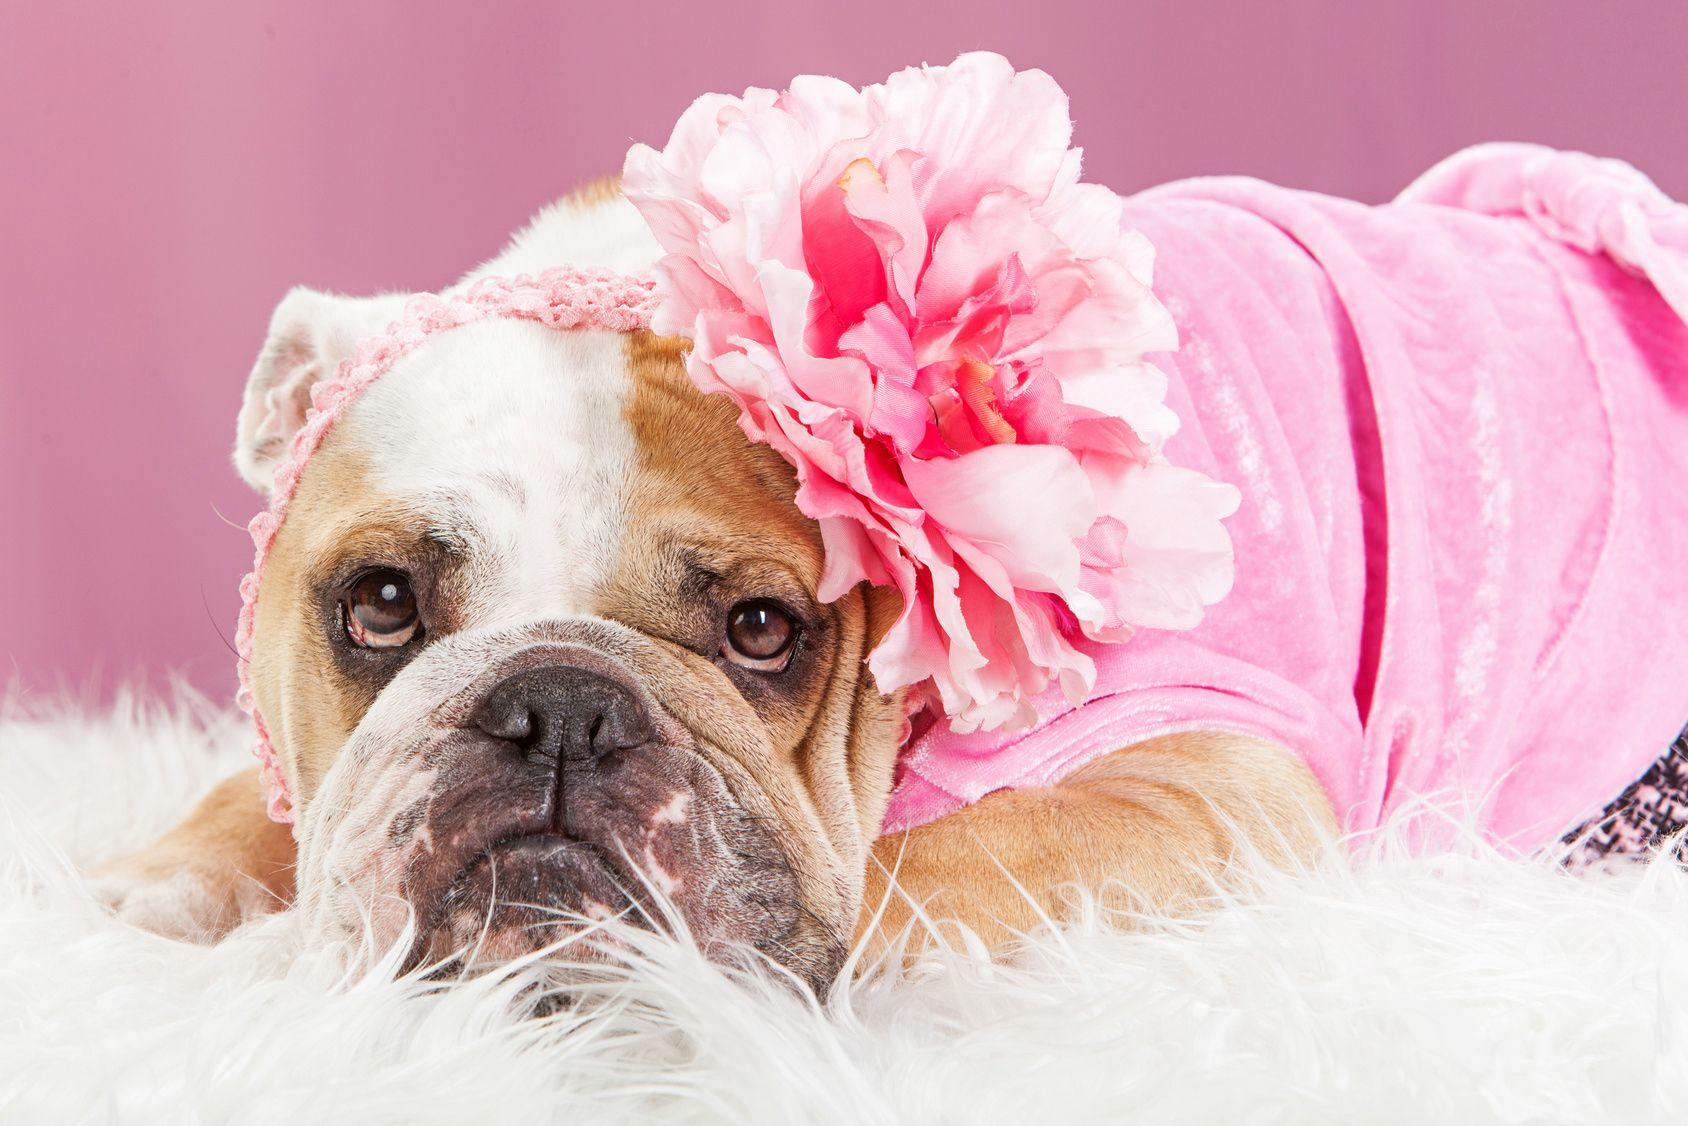 Adorable female English Bulldog breed dog wearing a pink outfit and big flower headband laying on a white fur blanket